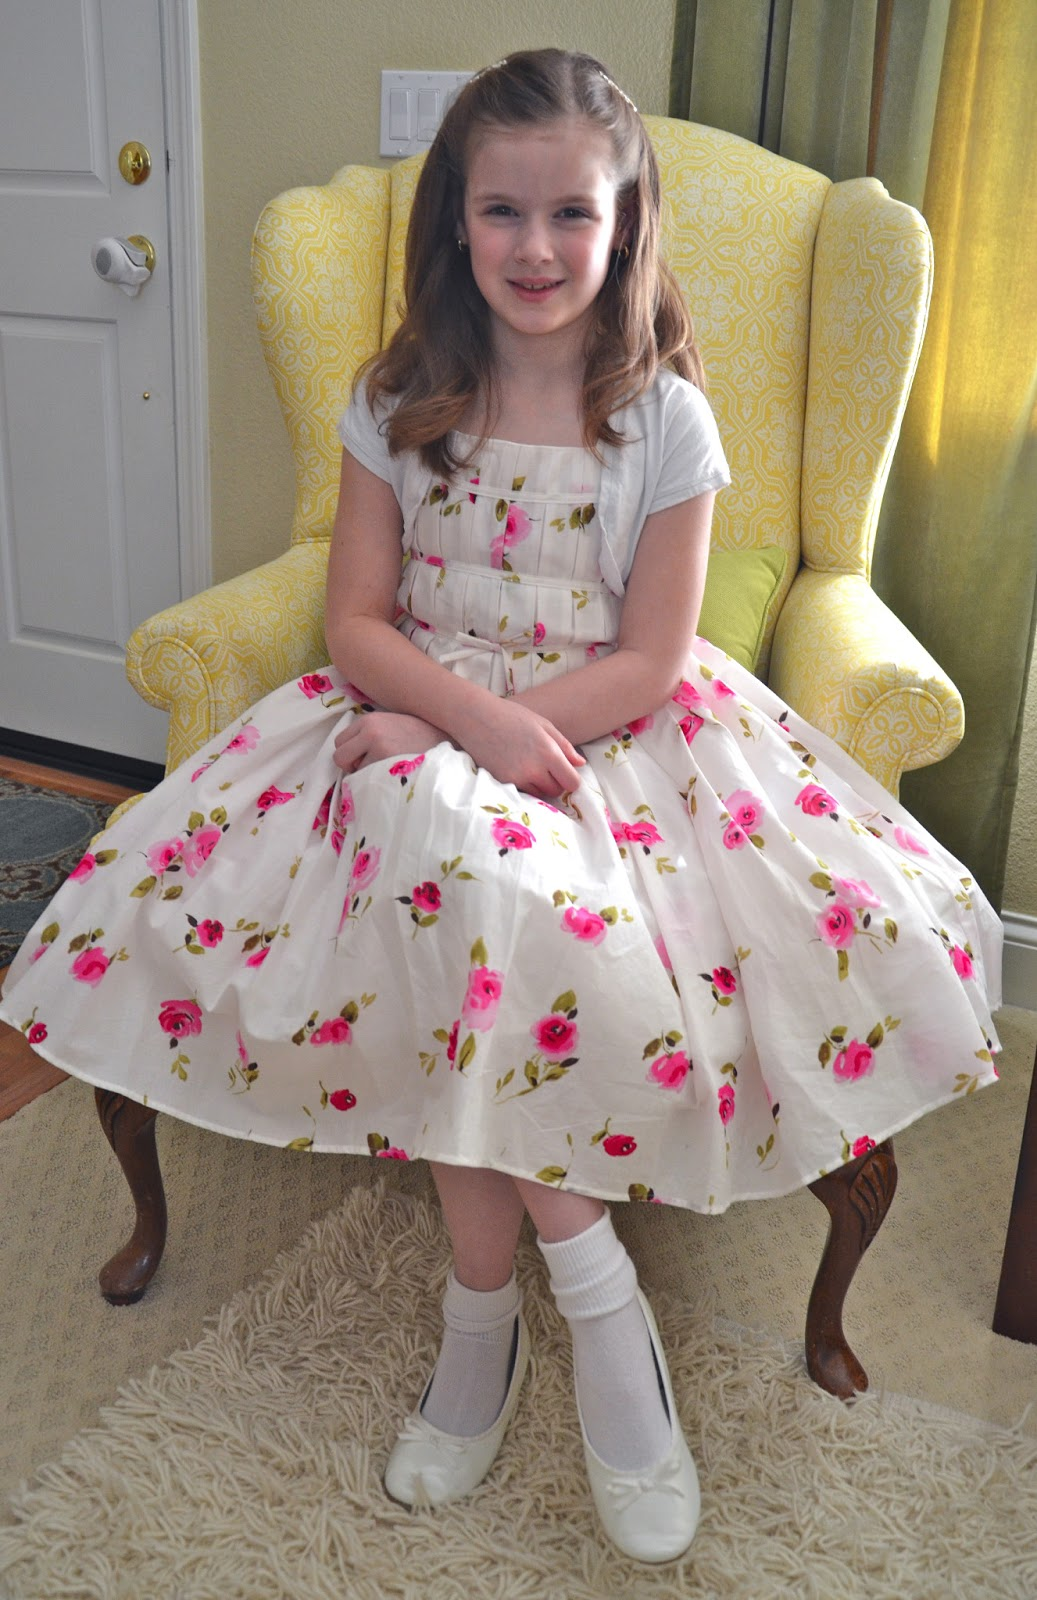 Church Dresses for Girls | Dress images